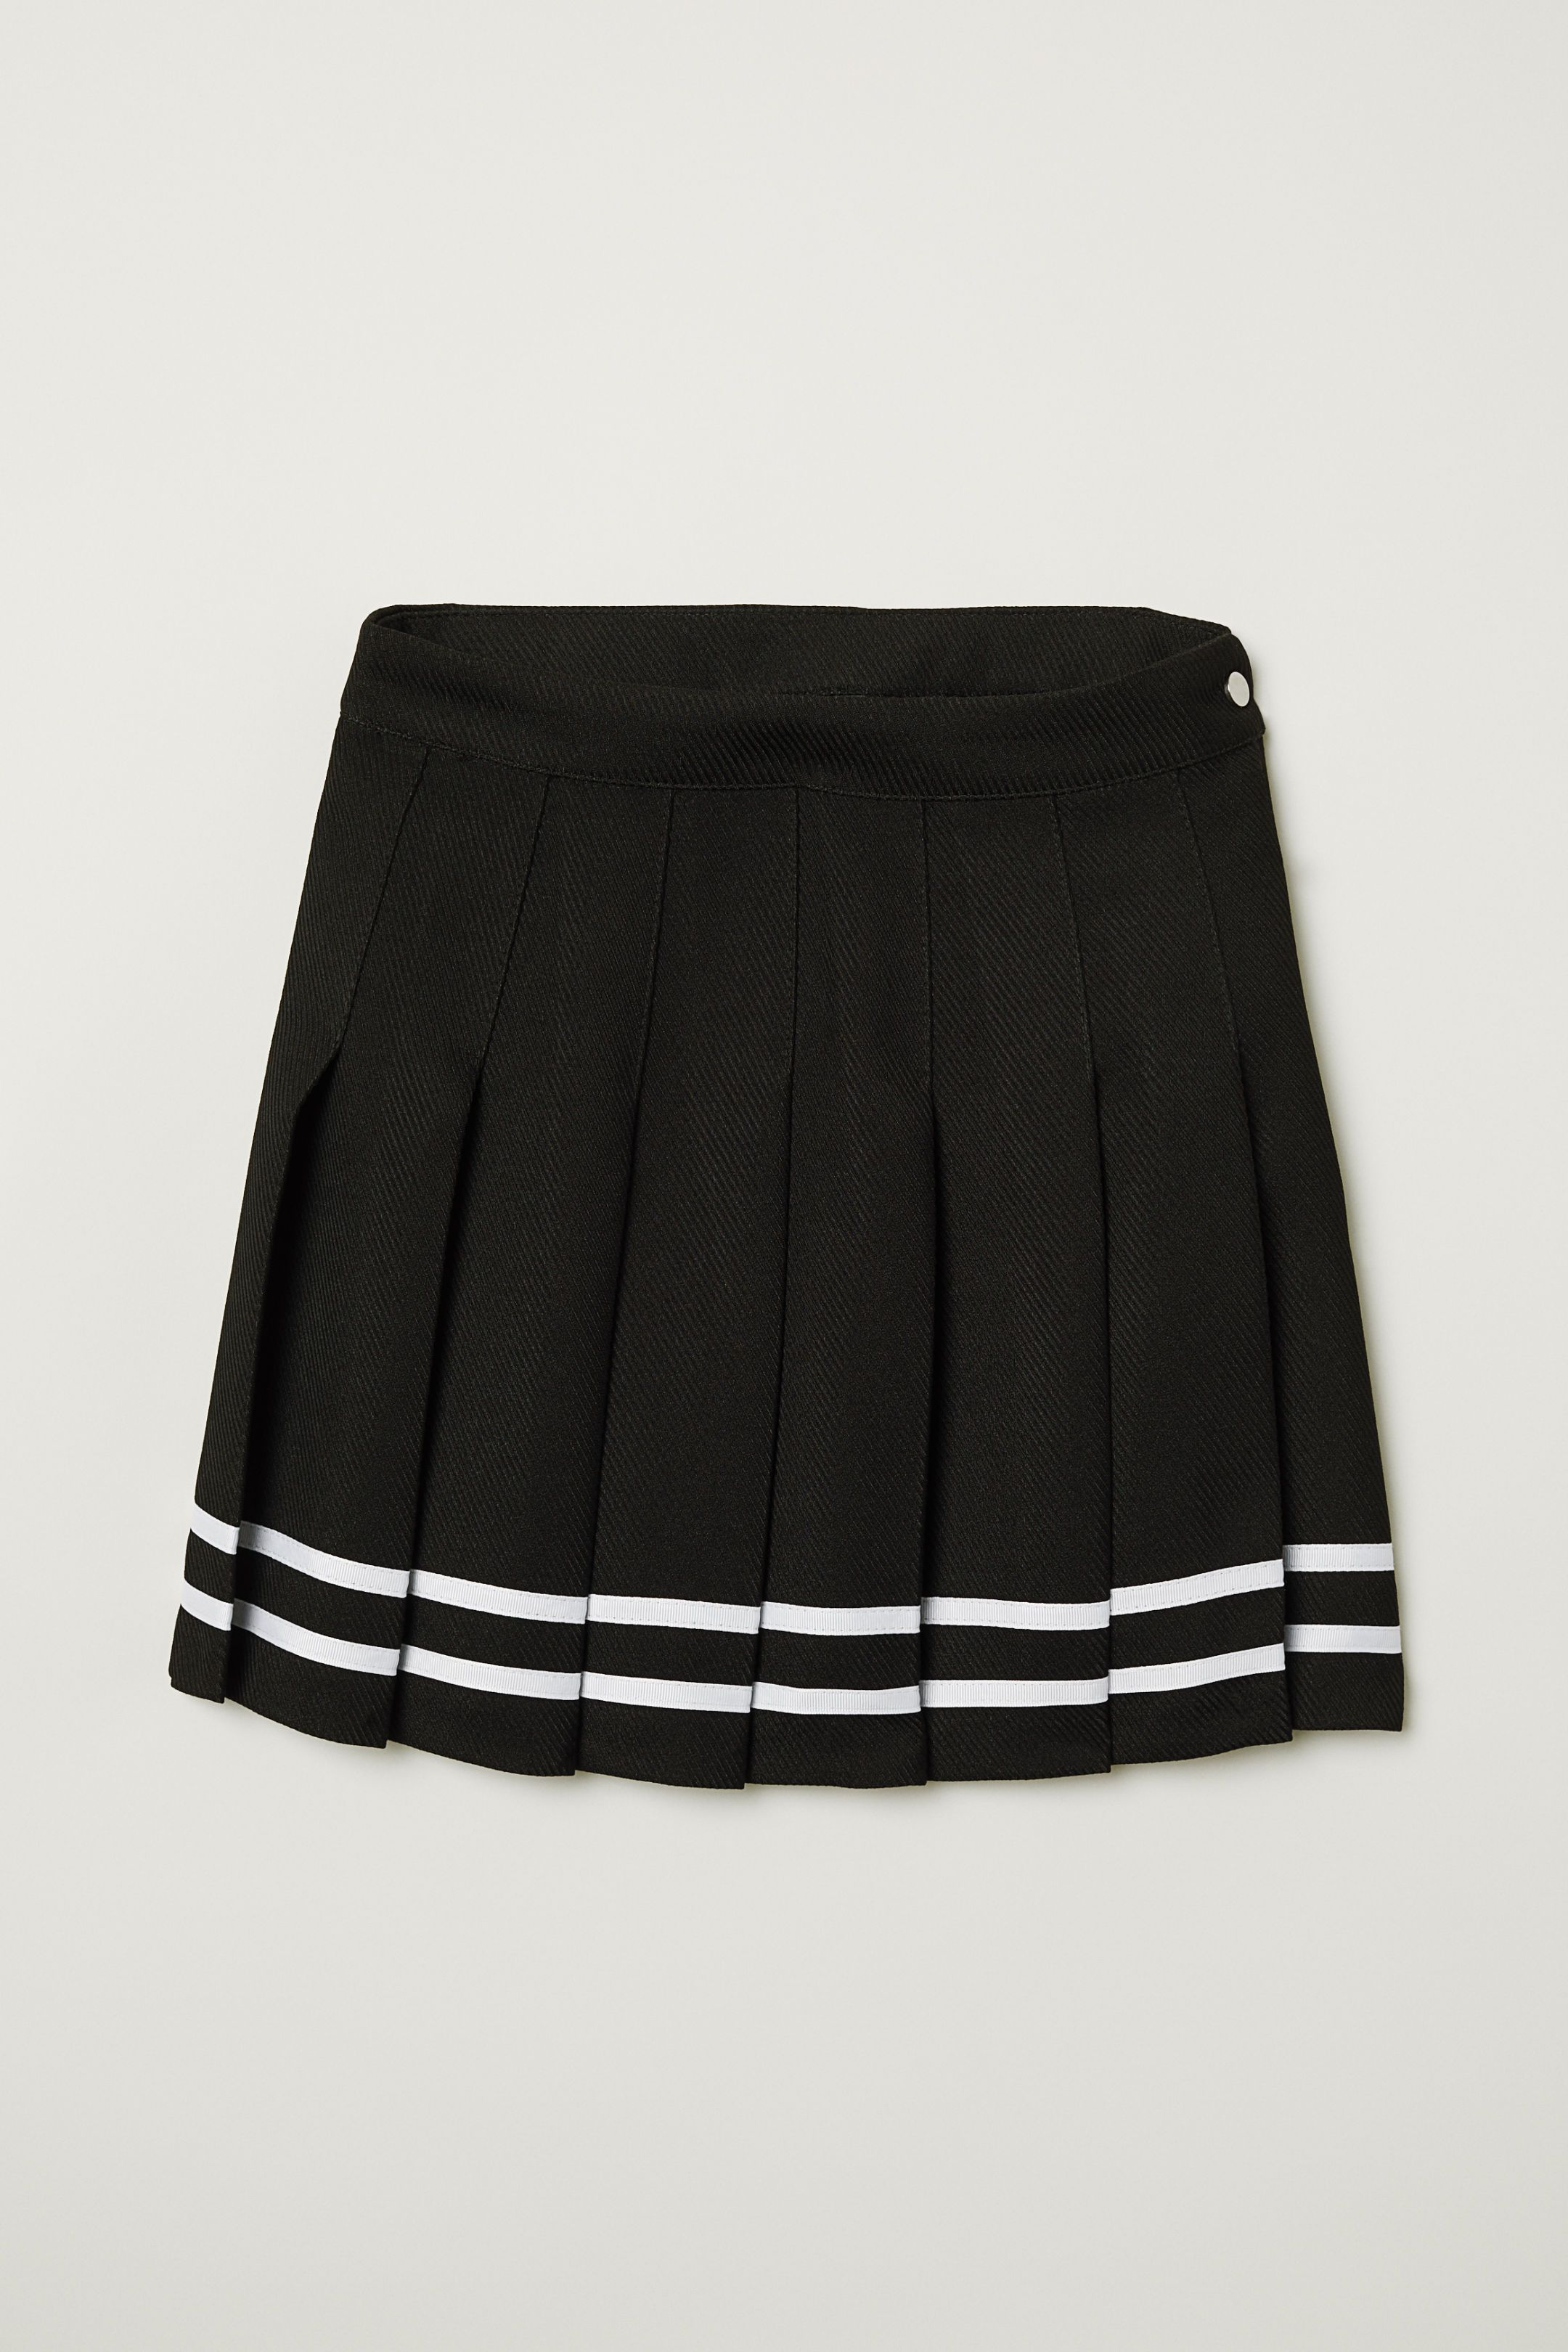 7c24dff143 Short Pleated Skirt in 2019 | Clothes | Pleated skirt outfit short ...